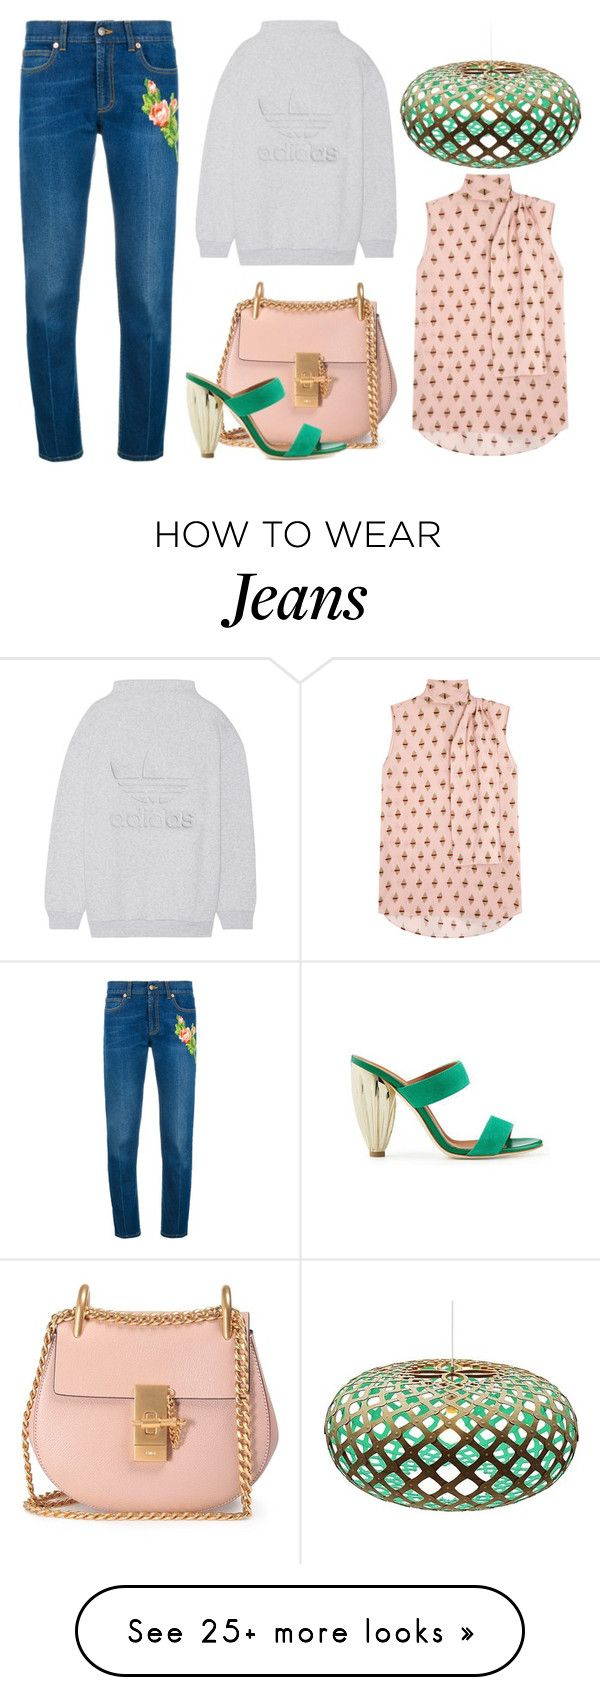 """""""Untitled #8561"""" by cherieaustin on Polyvore featuring Chloé, Gucci, adidas Originals, Malone Souliers, Valentino and David Trubridge"""